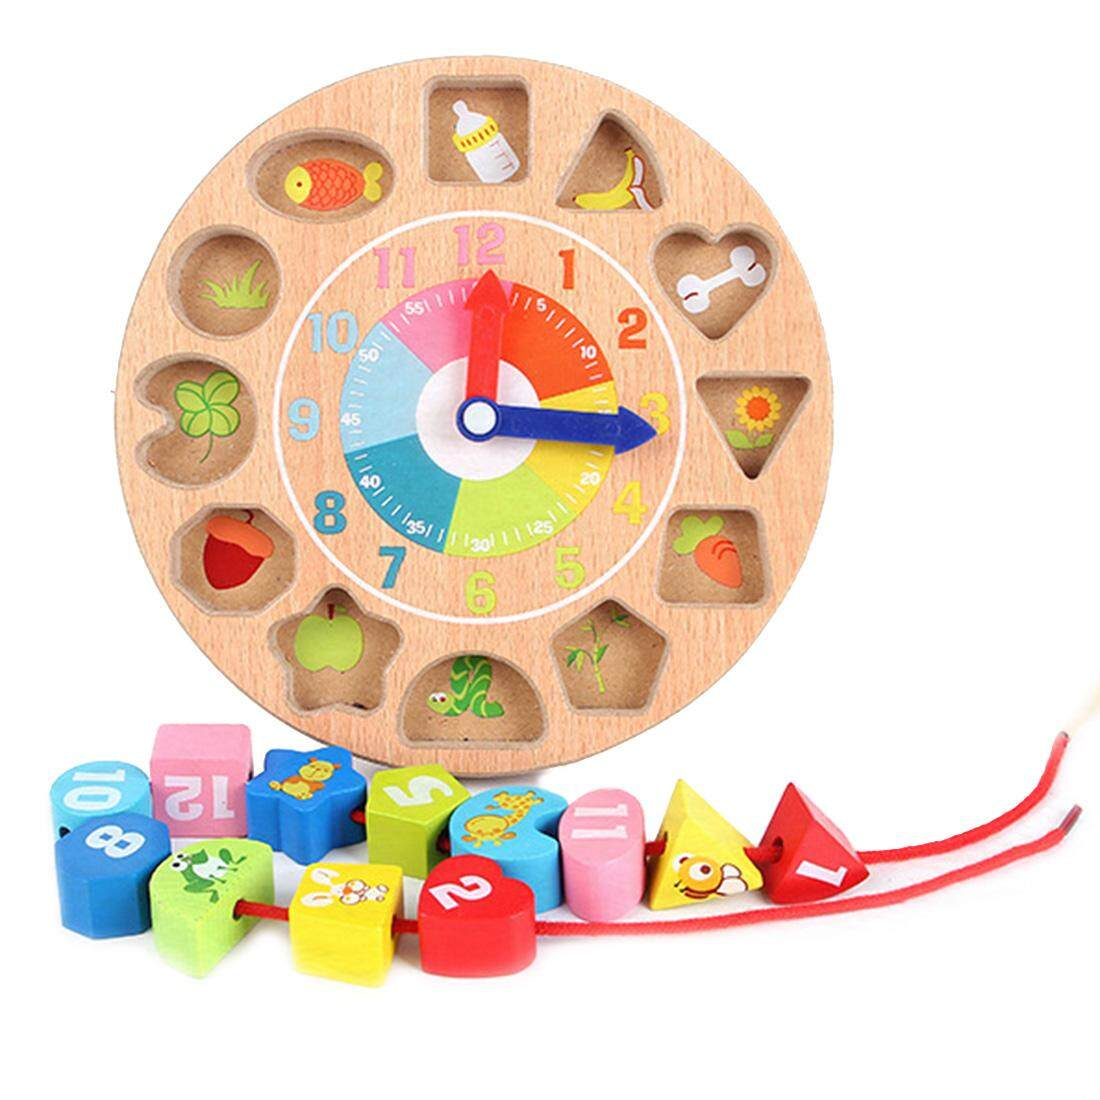 Childrens Intellectual Power Wooden Digital Animal Wearing Rope Toy Beaded Game Creative Clock Building Blocks Digital Geometric Clock Childhood Early Education Matching Game Toy By Dragonlee.